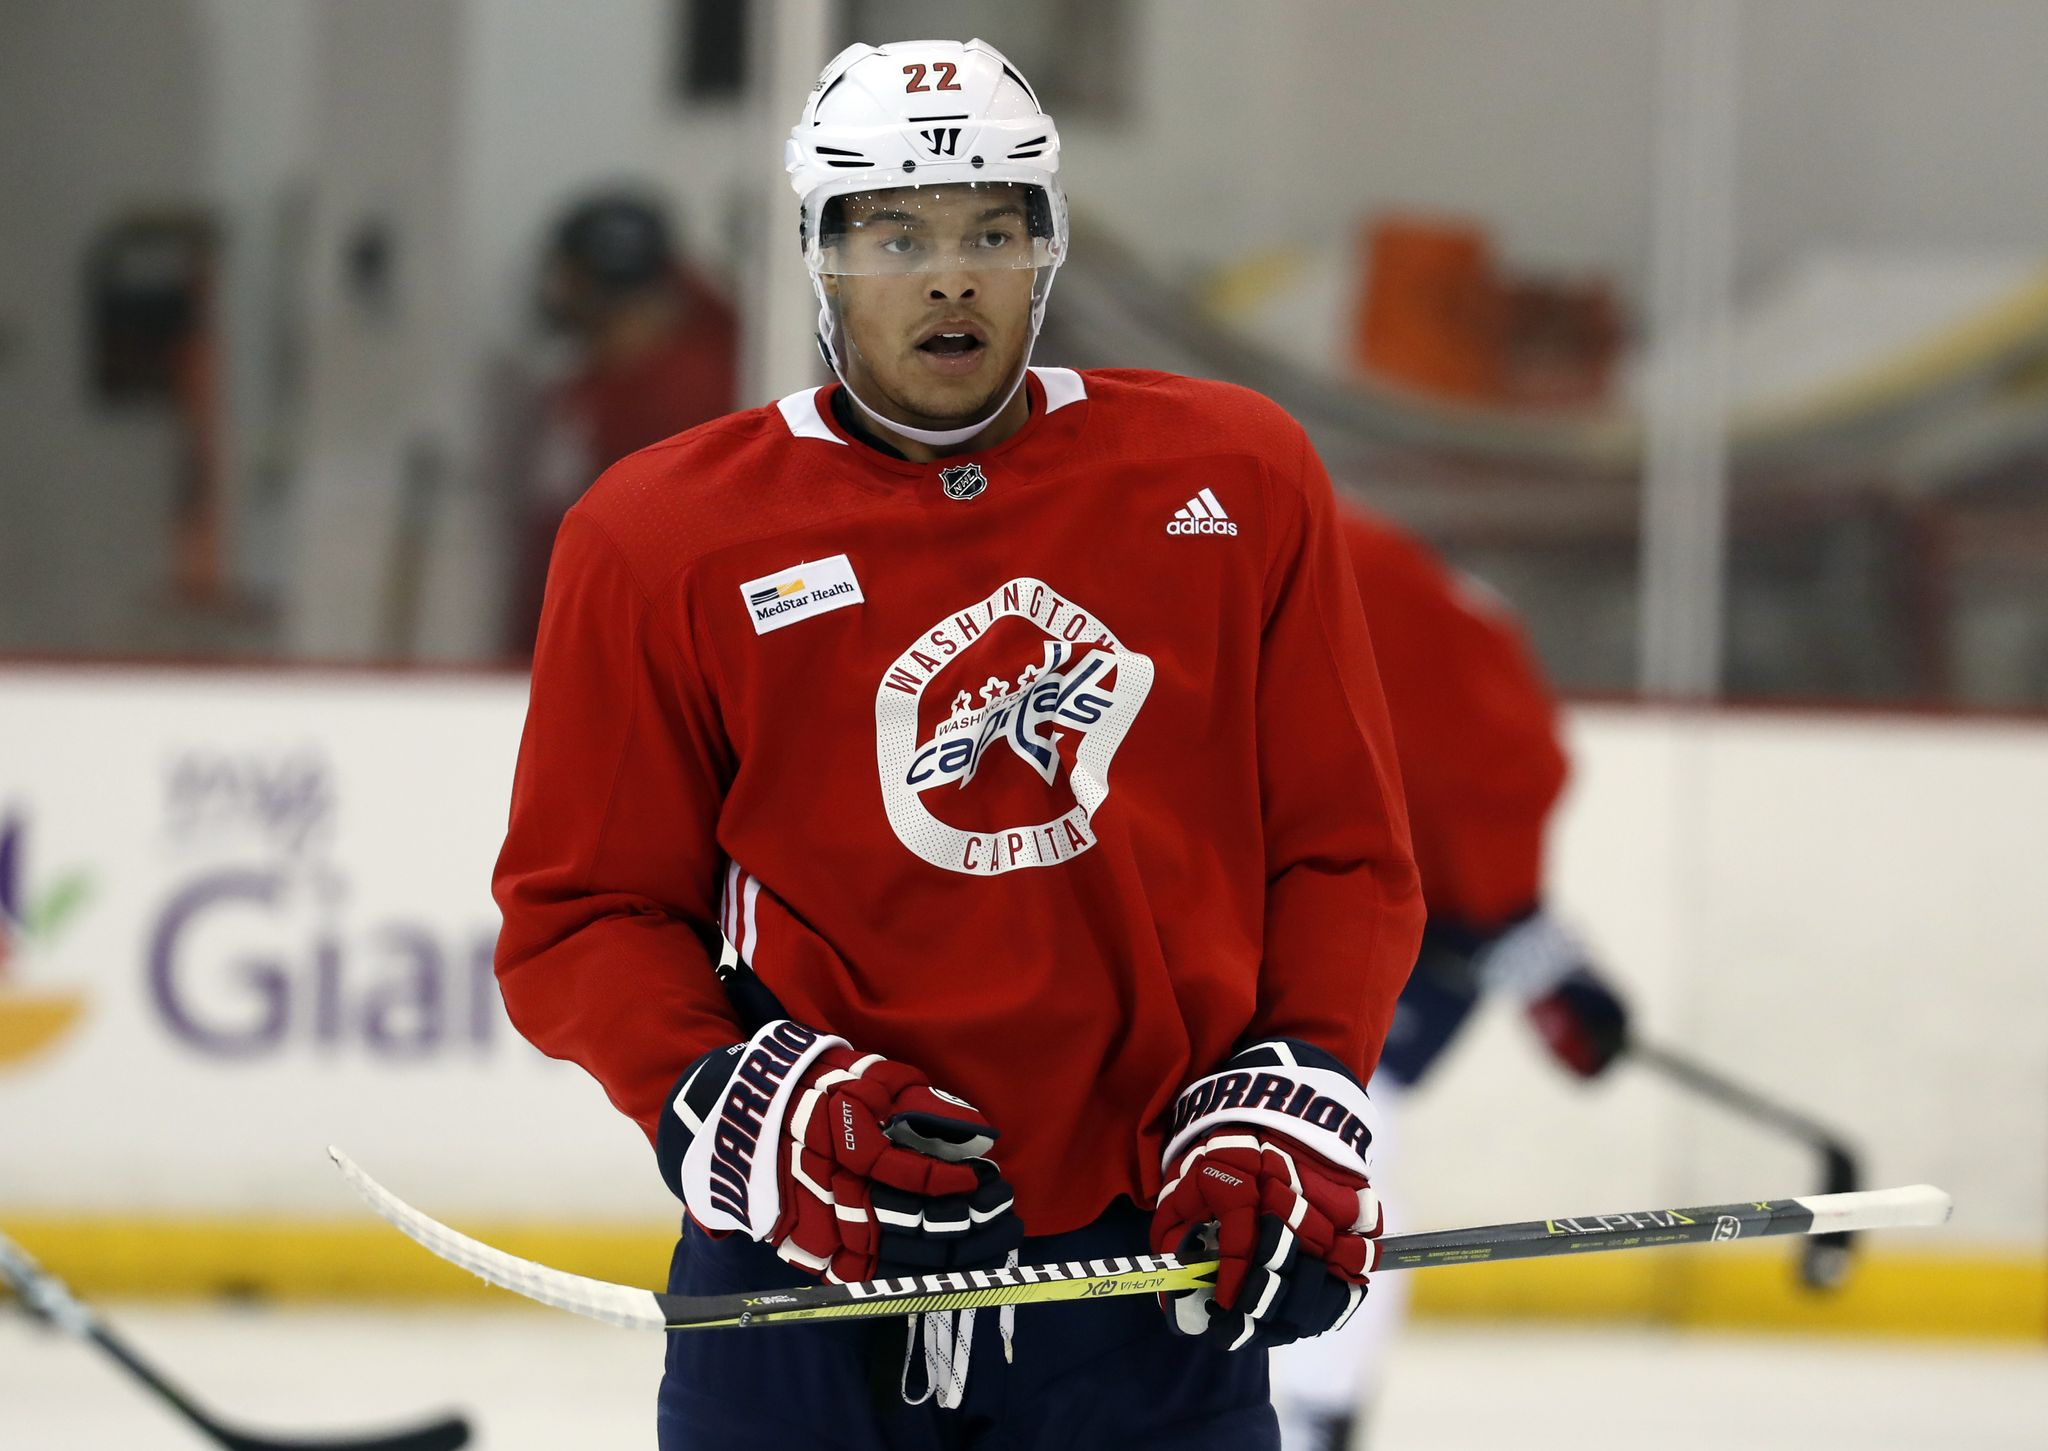 Capitals_camp_hockey_90345.jpg-75fd7_s2048x1451